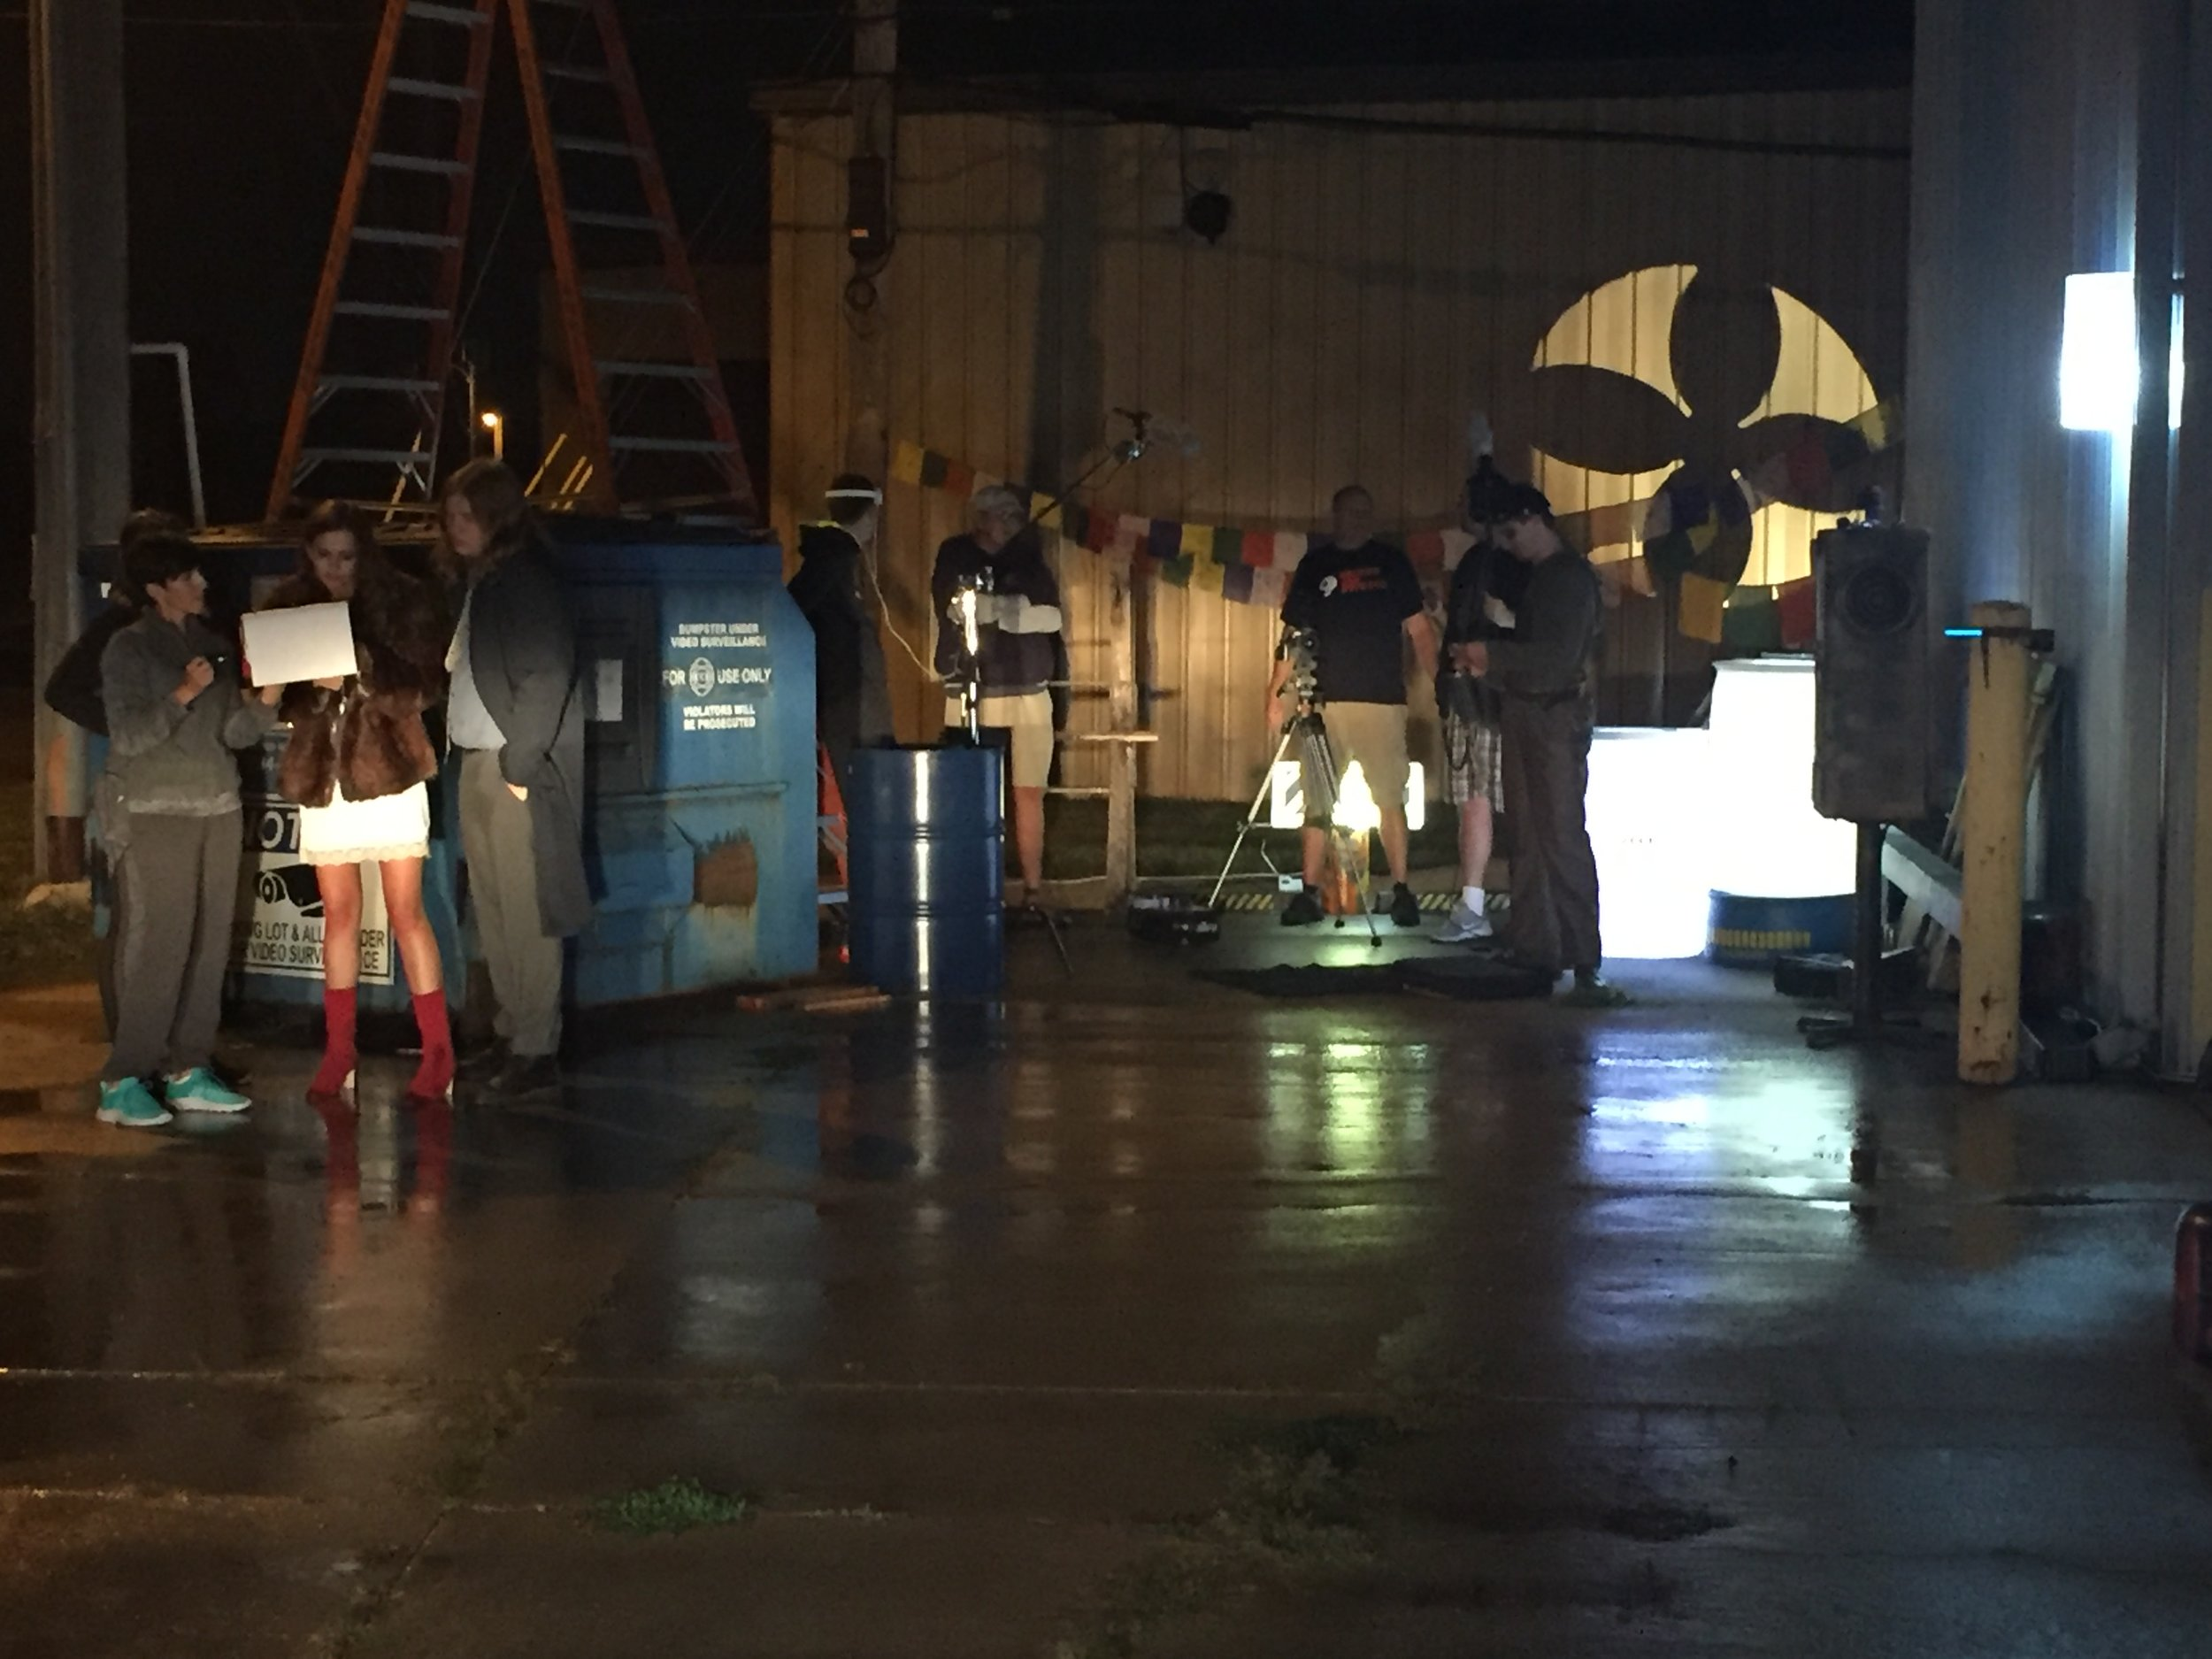 Some of the Juice cast and crew on set. The Rotating Industrial Fan Projector Prop for Juice can be seen in the background.